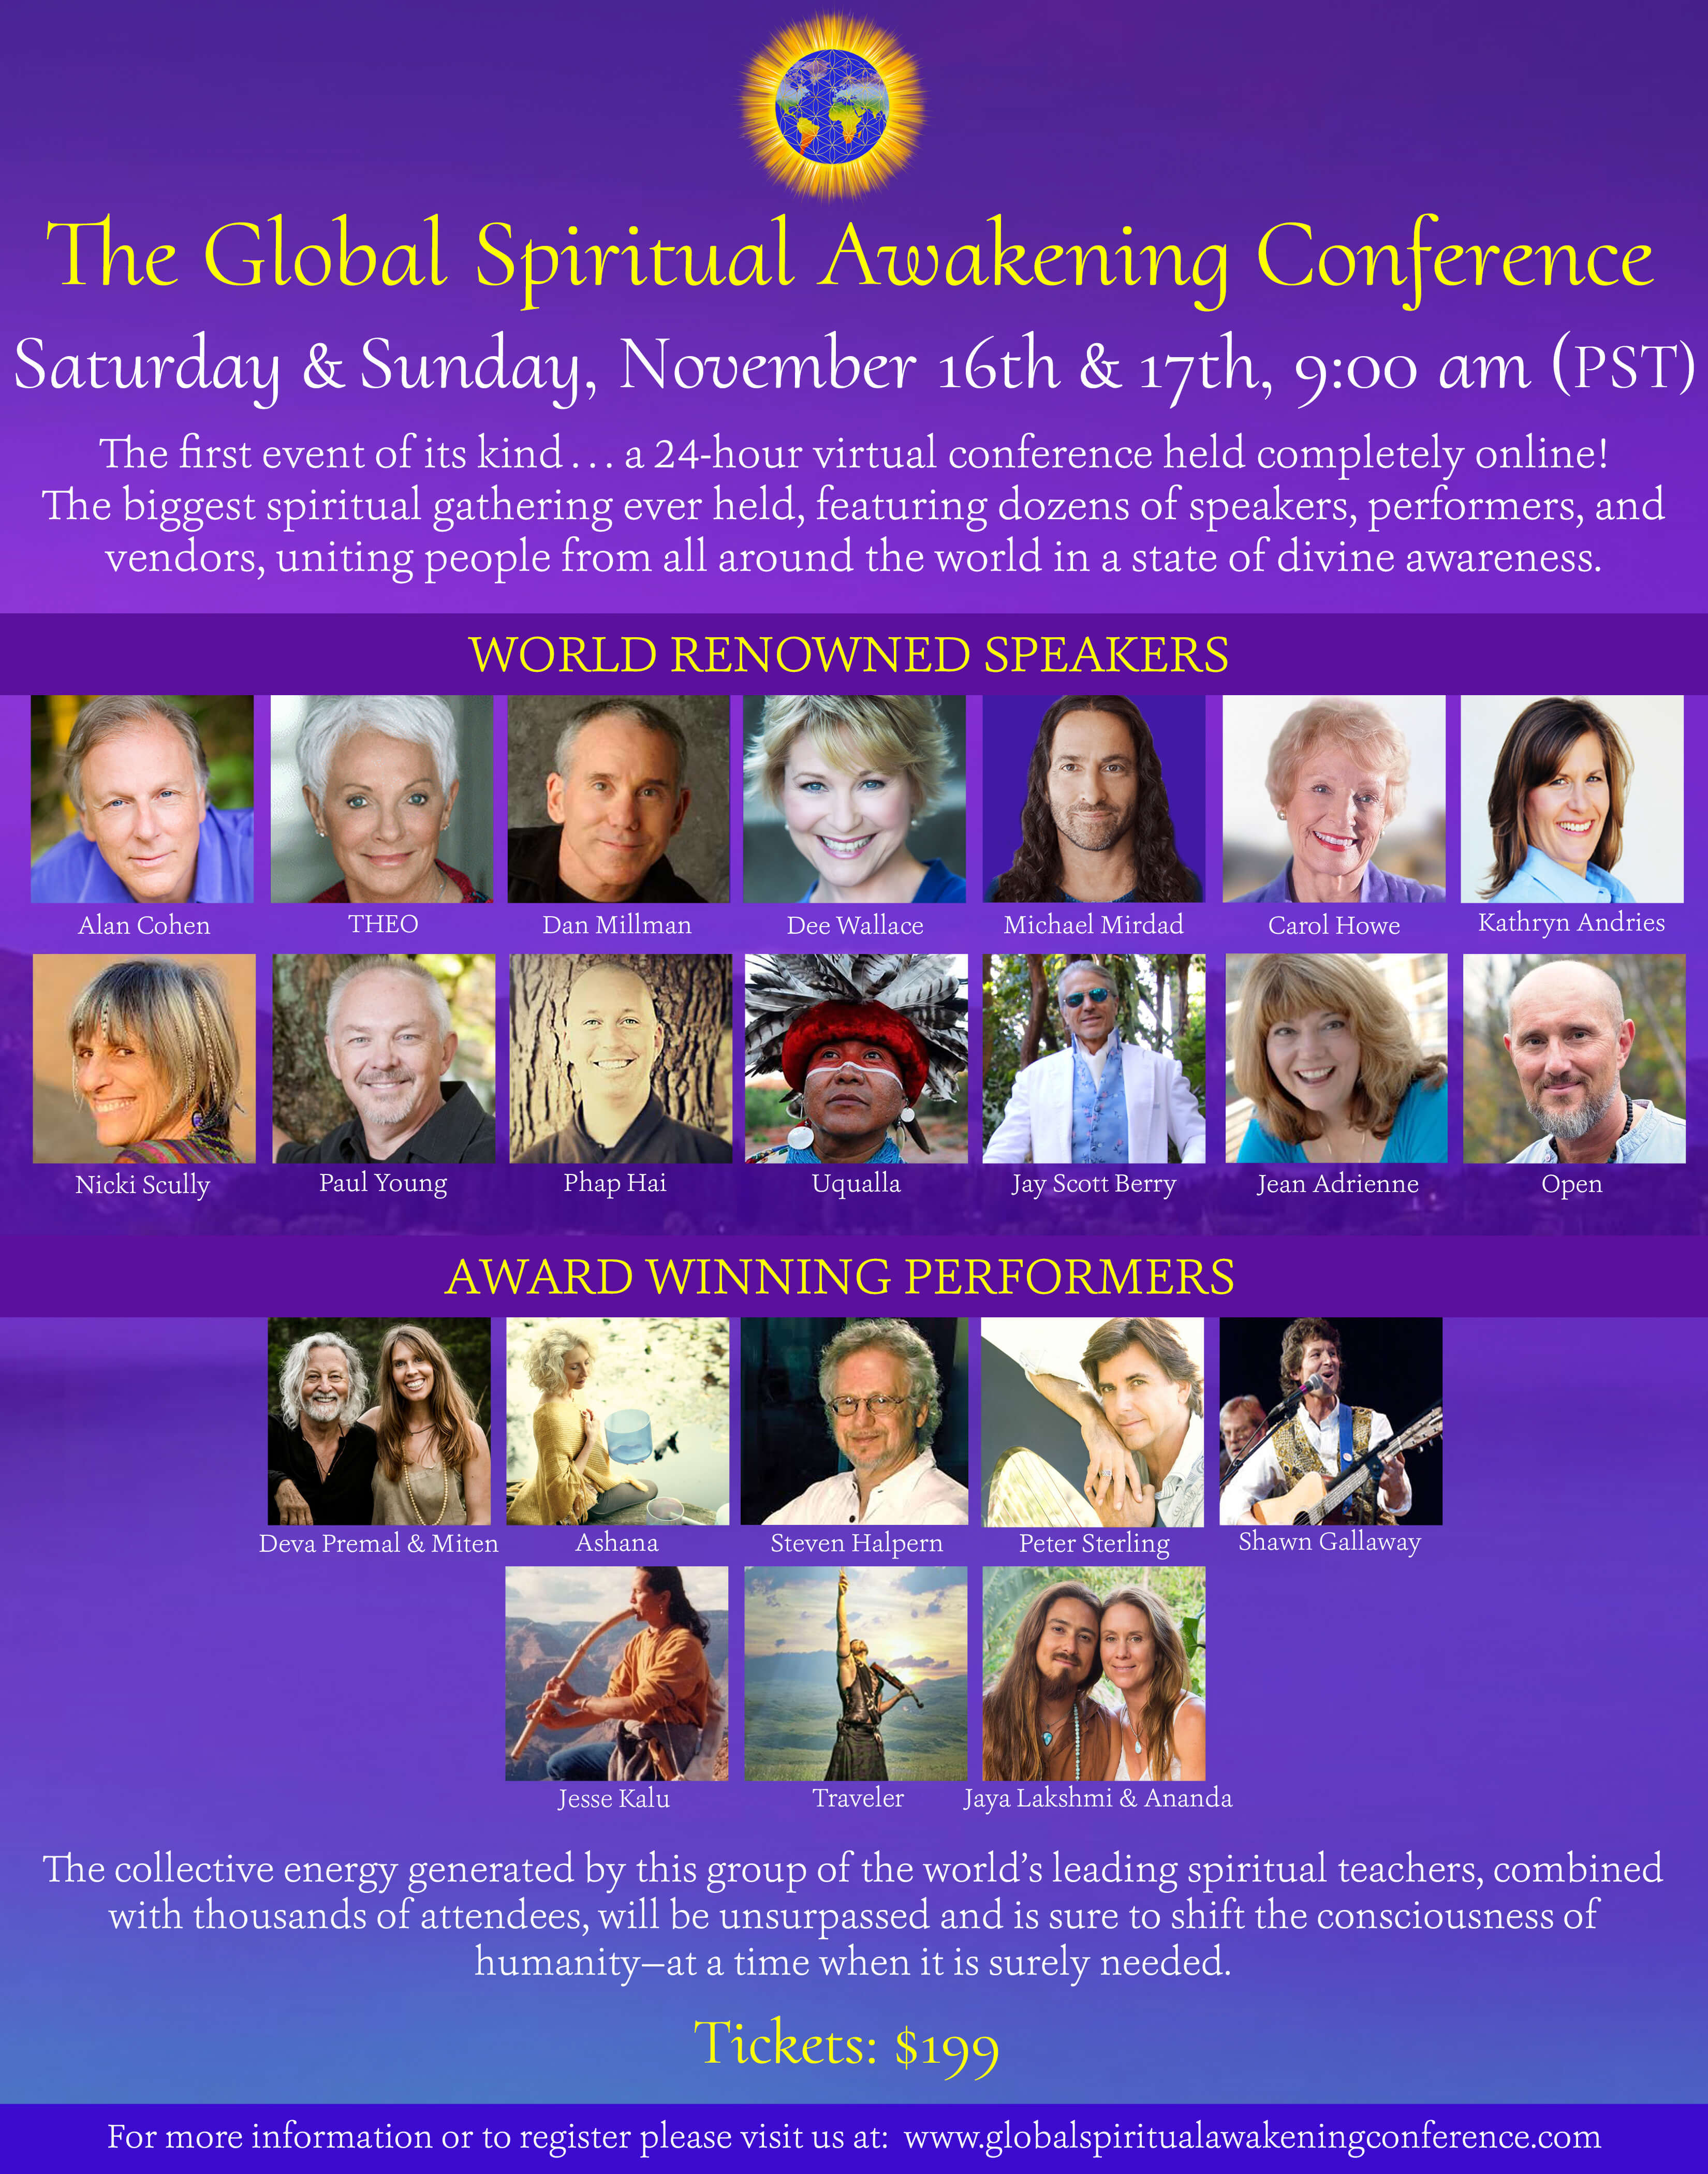 Openhand at the Global Spiritual Awakening Conference